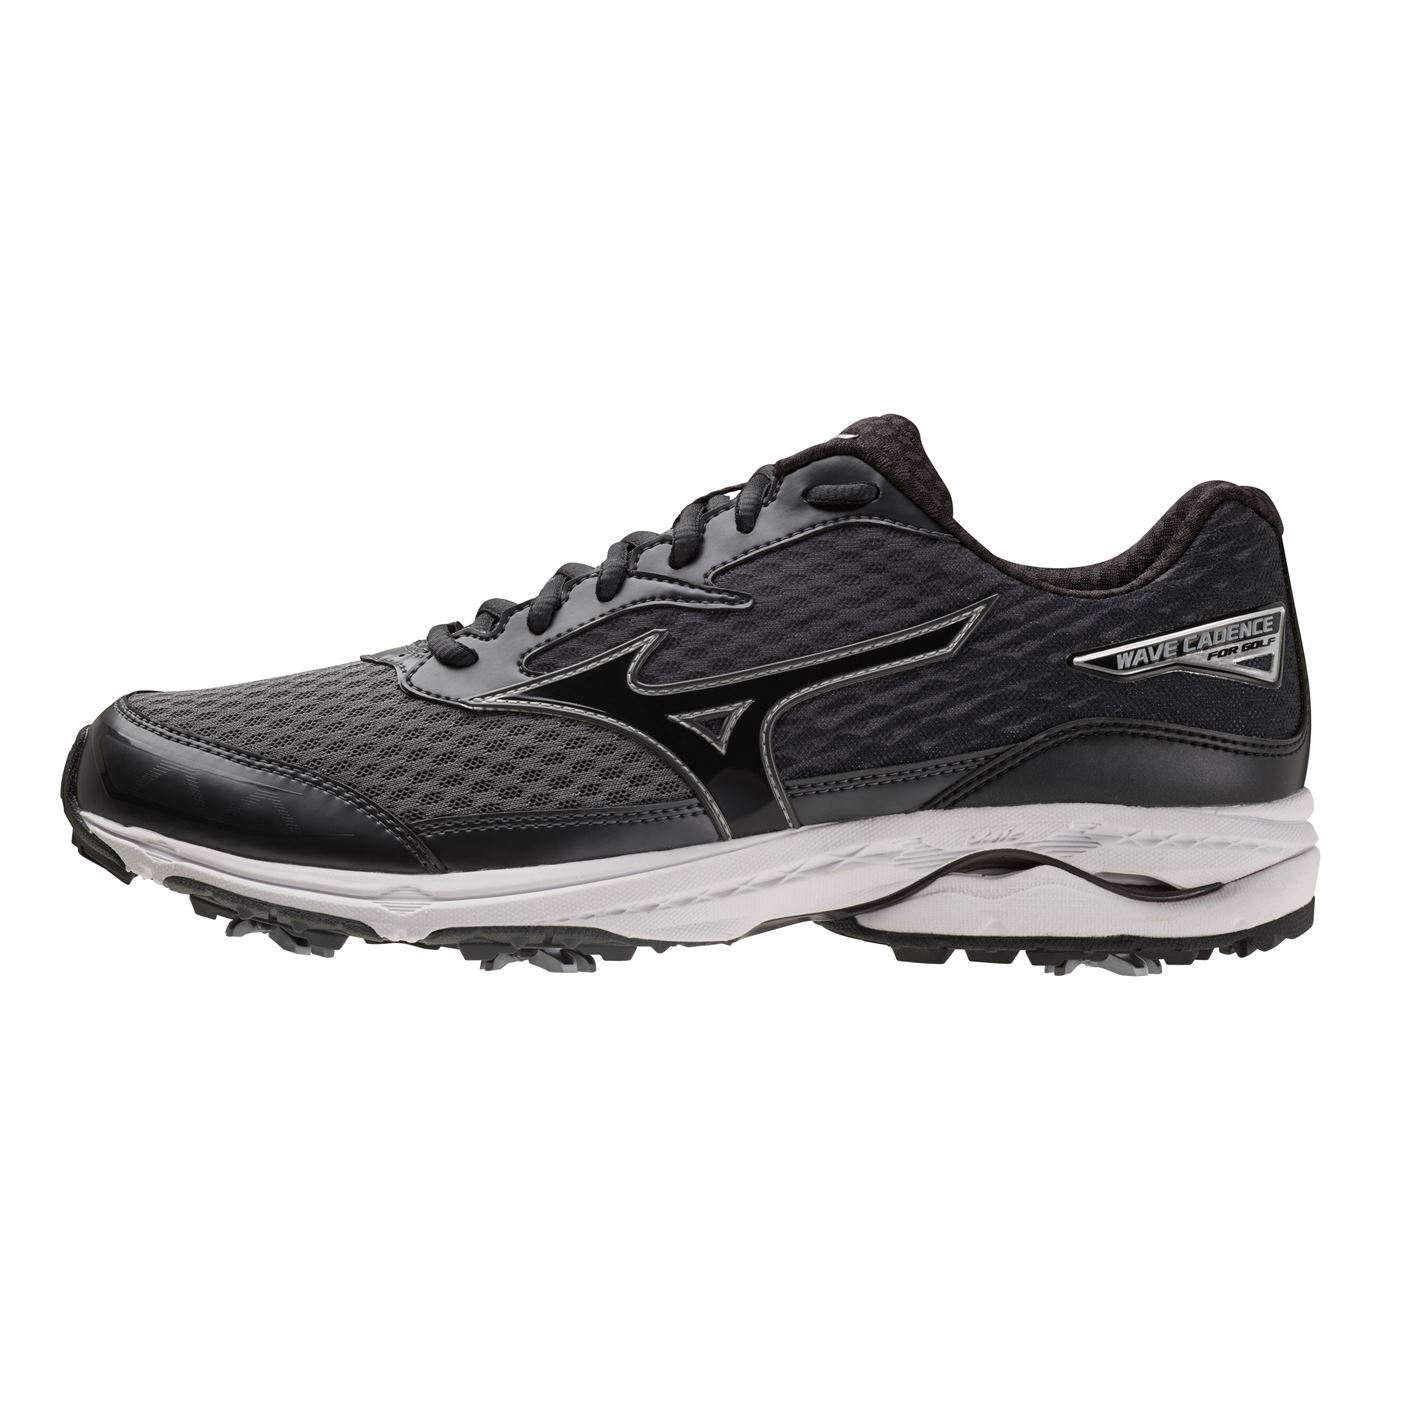 Mizuno-Wave-Cadence-Golf-Shoes-Mens-Spikes-Footwear thumbnail 5